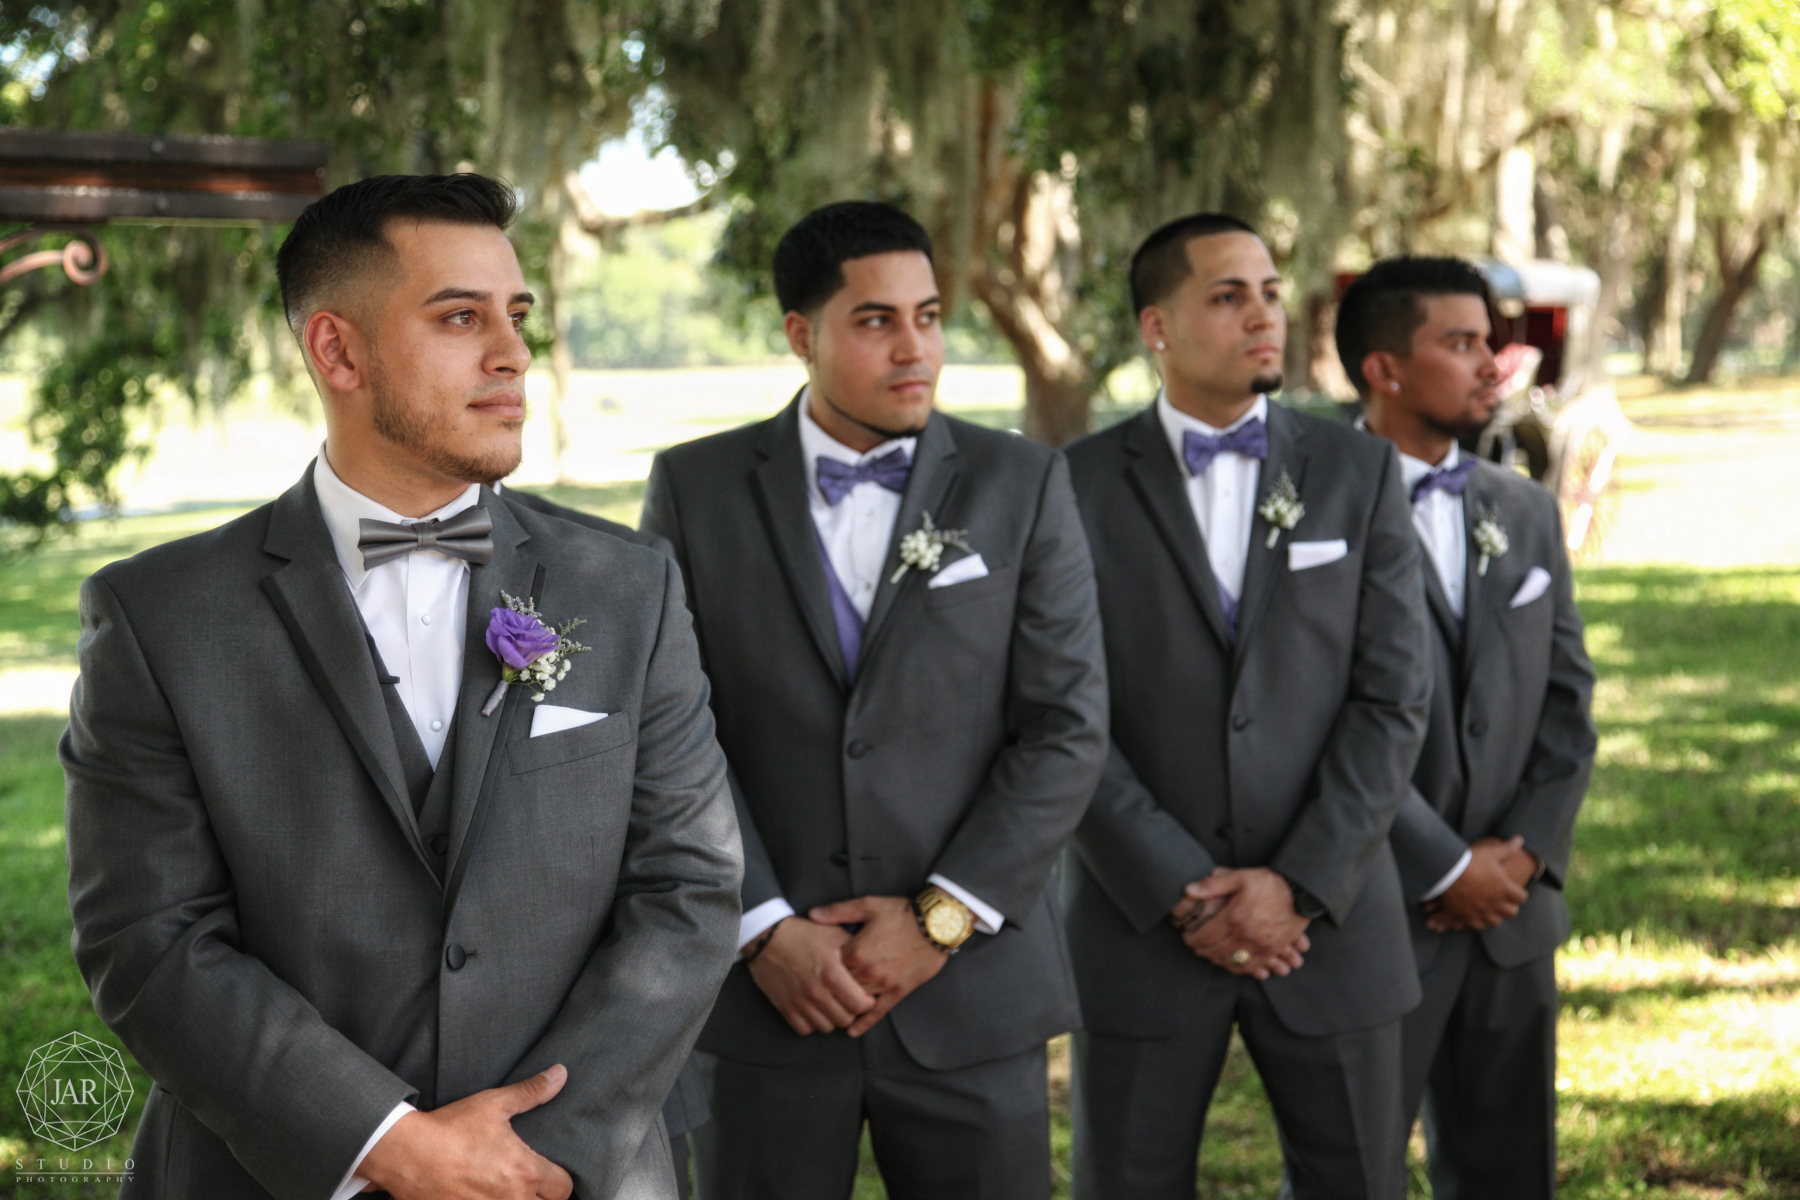 18-gray-lavander-groom-men-tuxedos-orlando-jarstudio-photographer.JPG